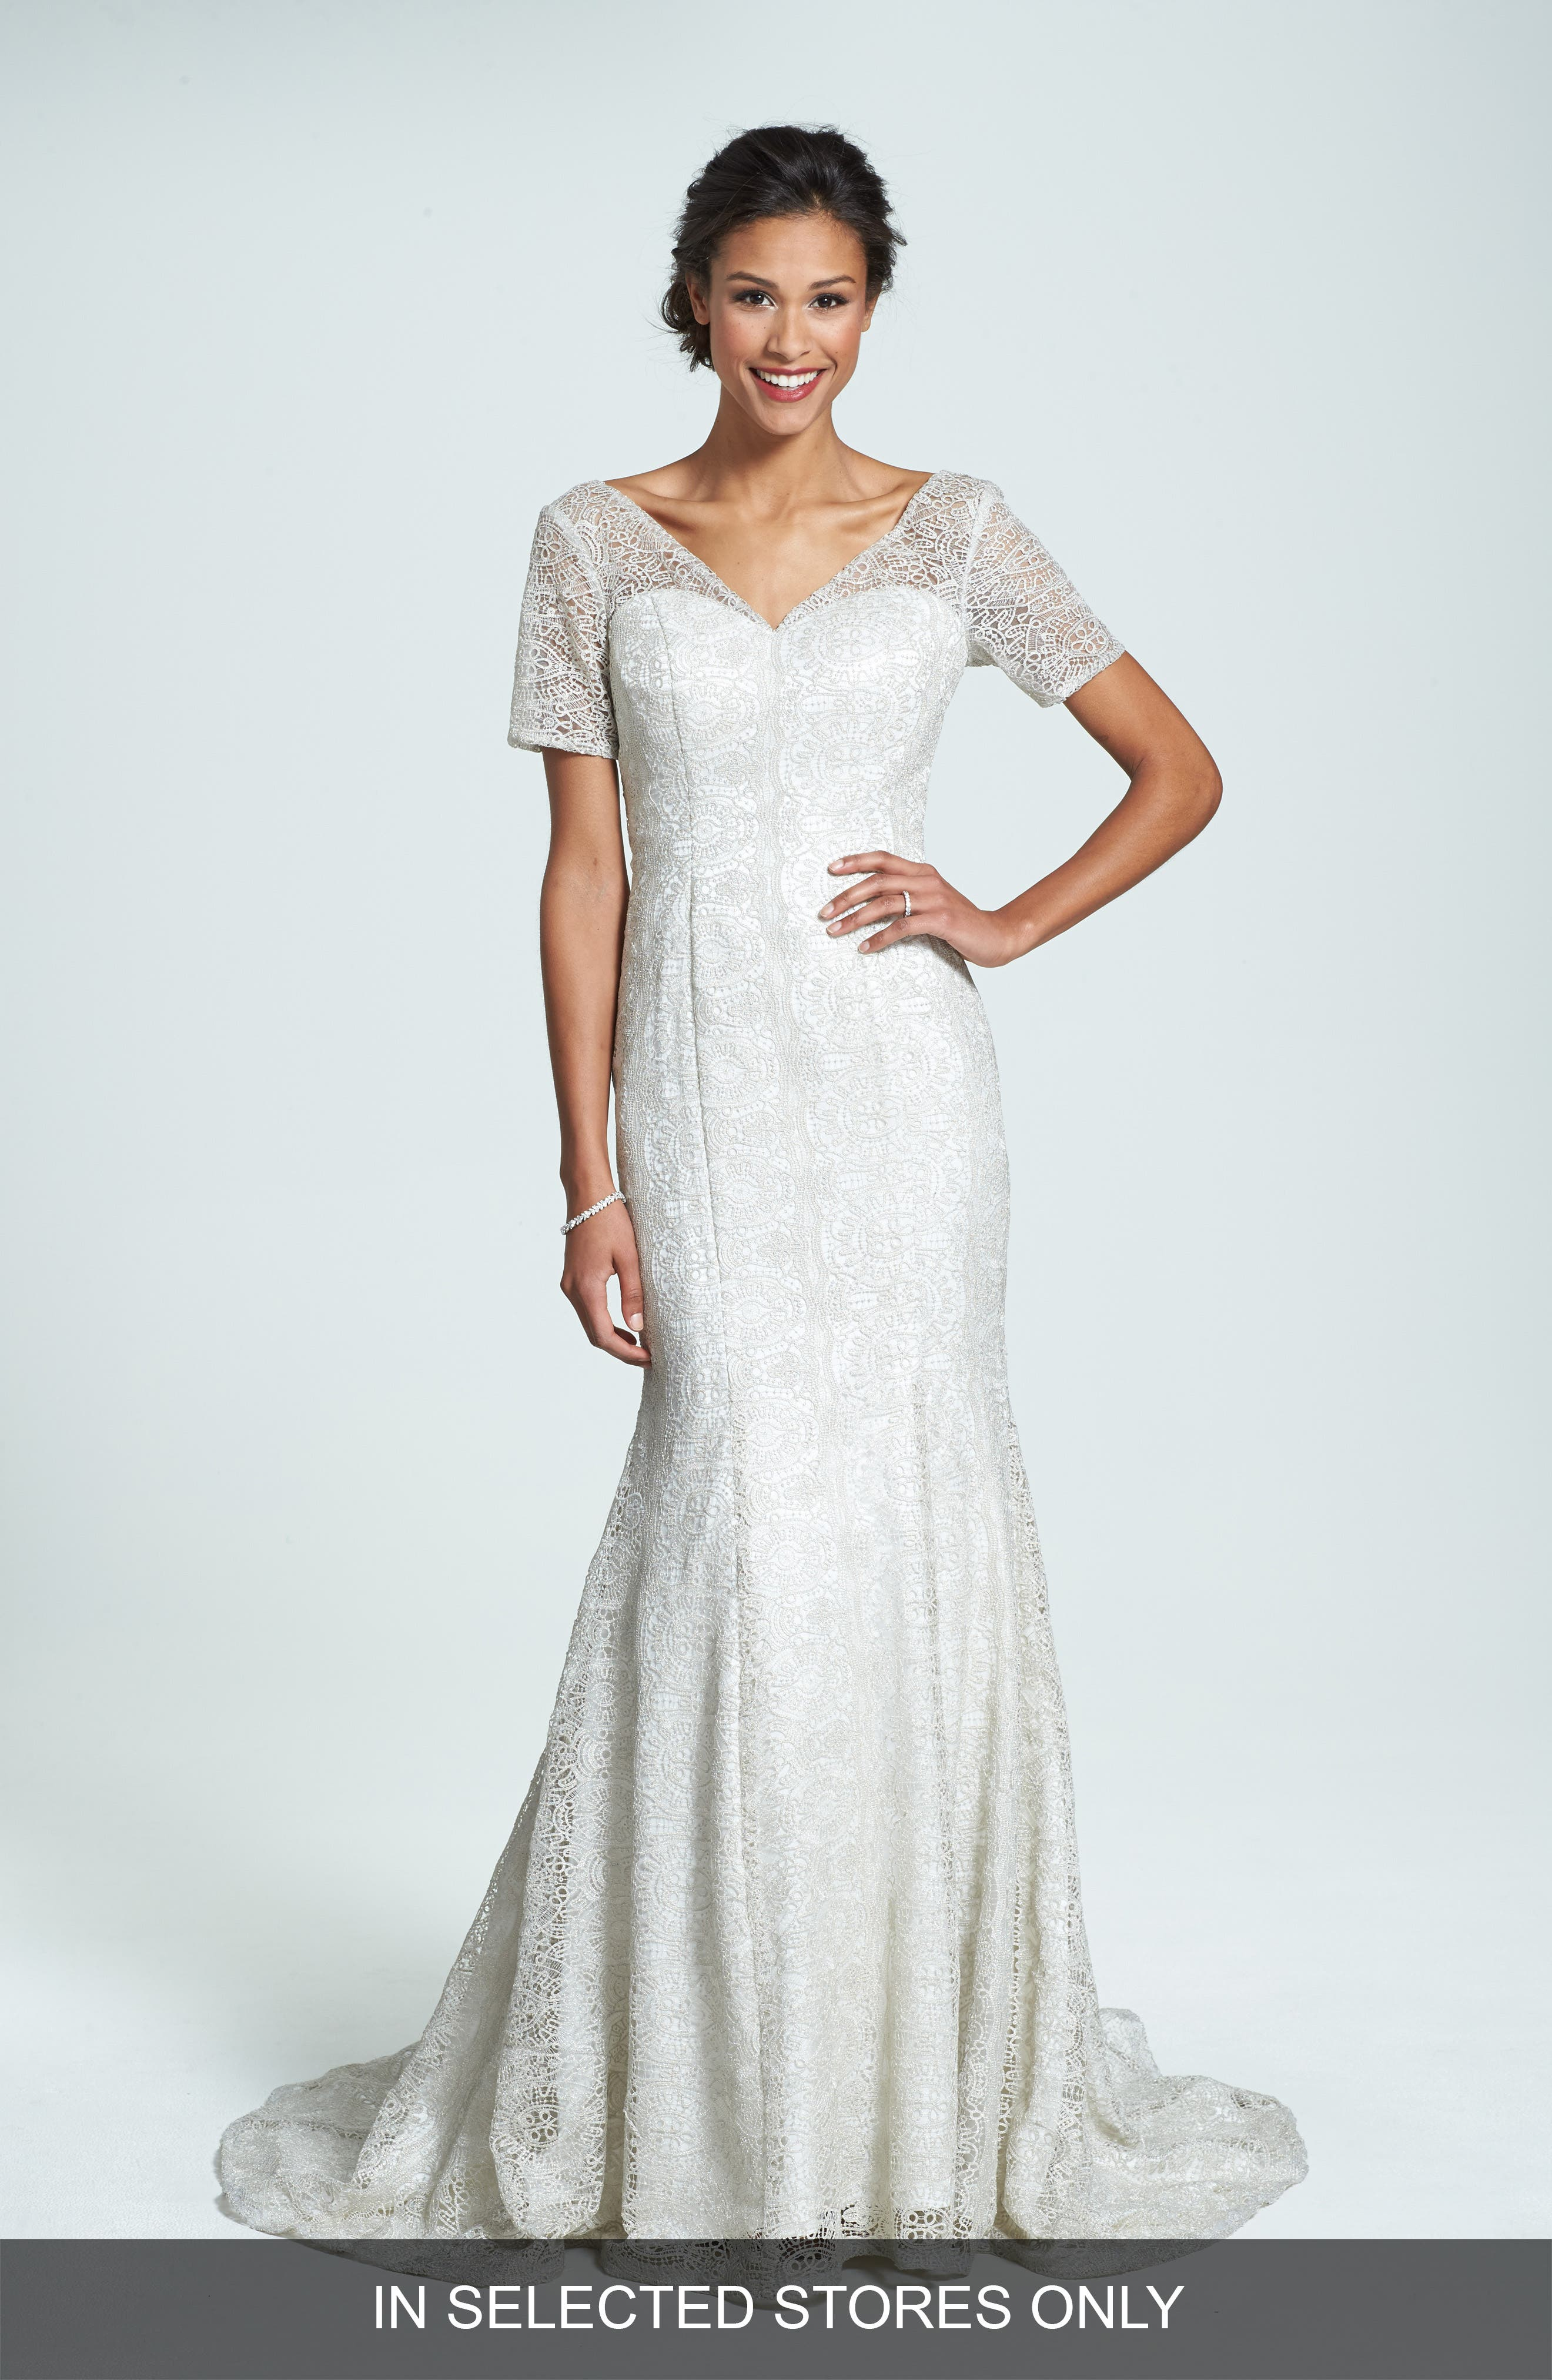 Olia Zavozina 'Ivy' Metallic Lace Trumpet Gown (In Stores Only)